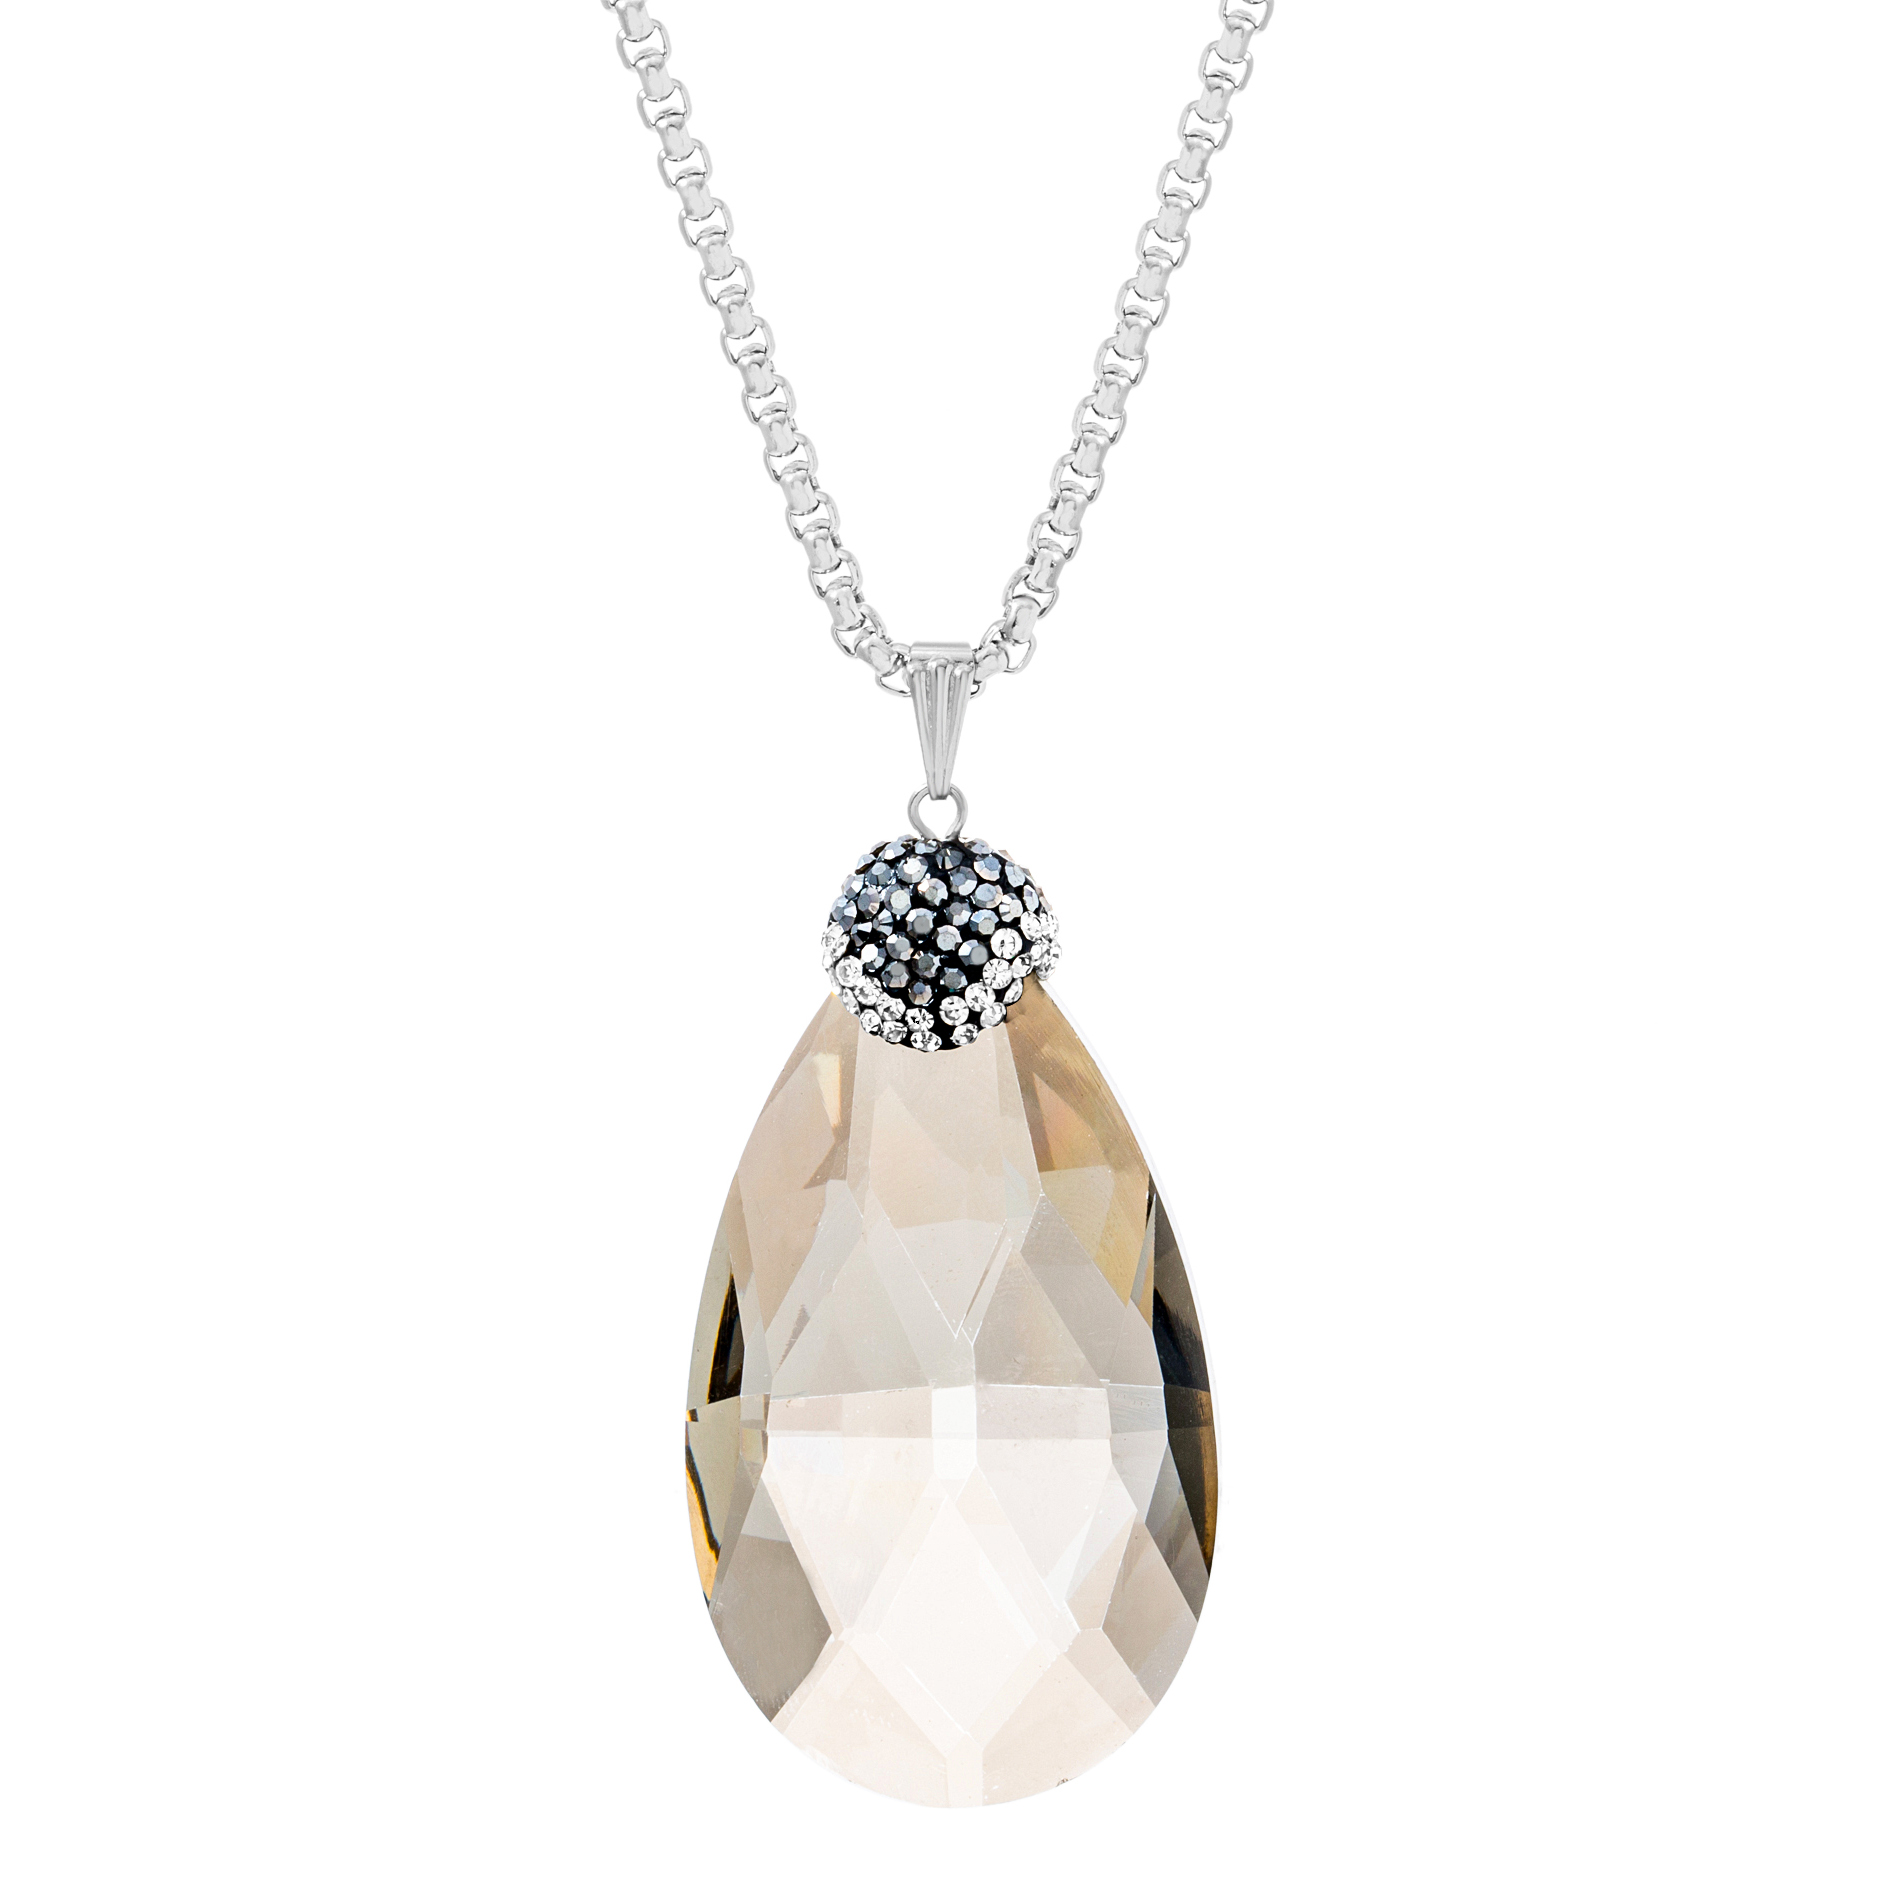 Silver-Tone Stainless Steel Cubic Zirconia and Marcasite Faceted Oval Stone Necklace